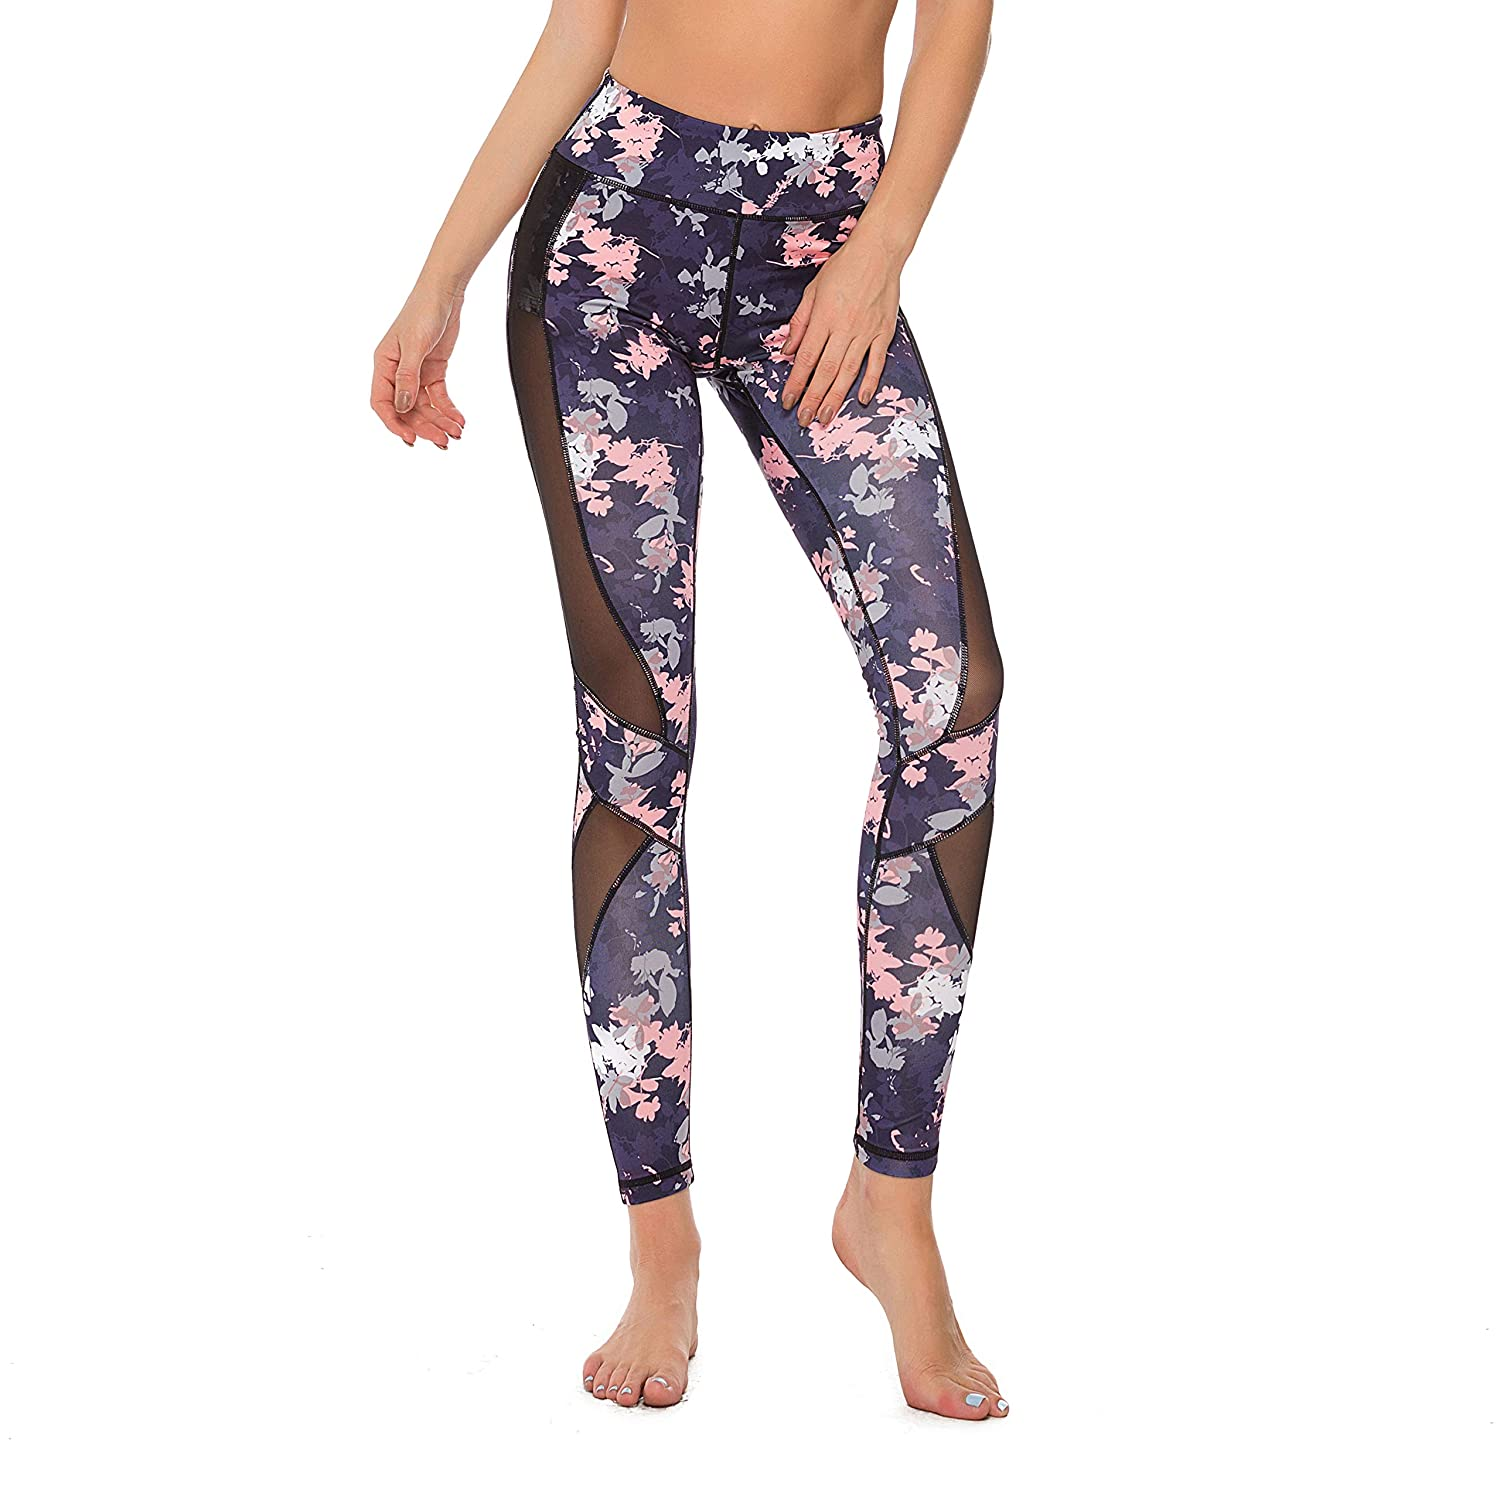 Akilex Yoga Pants with Pockets High Waist Sports Gym Leggings Womens Fitness Workout Athleisure Tights Power Stretch Trousers